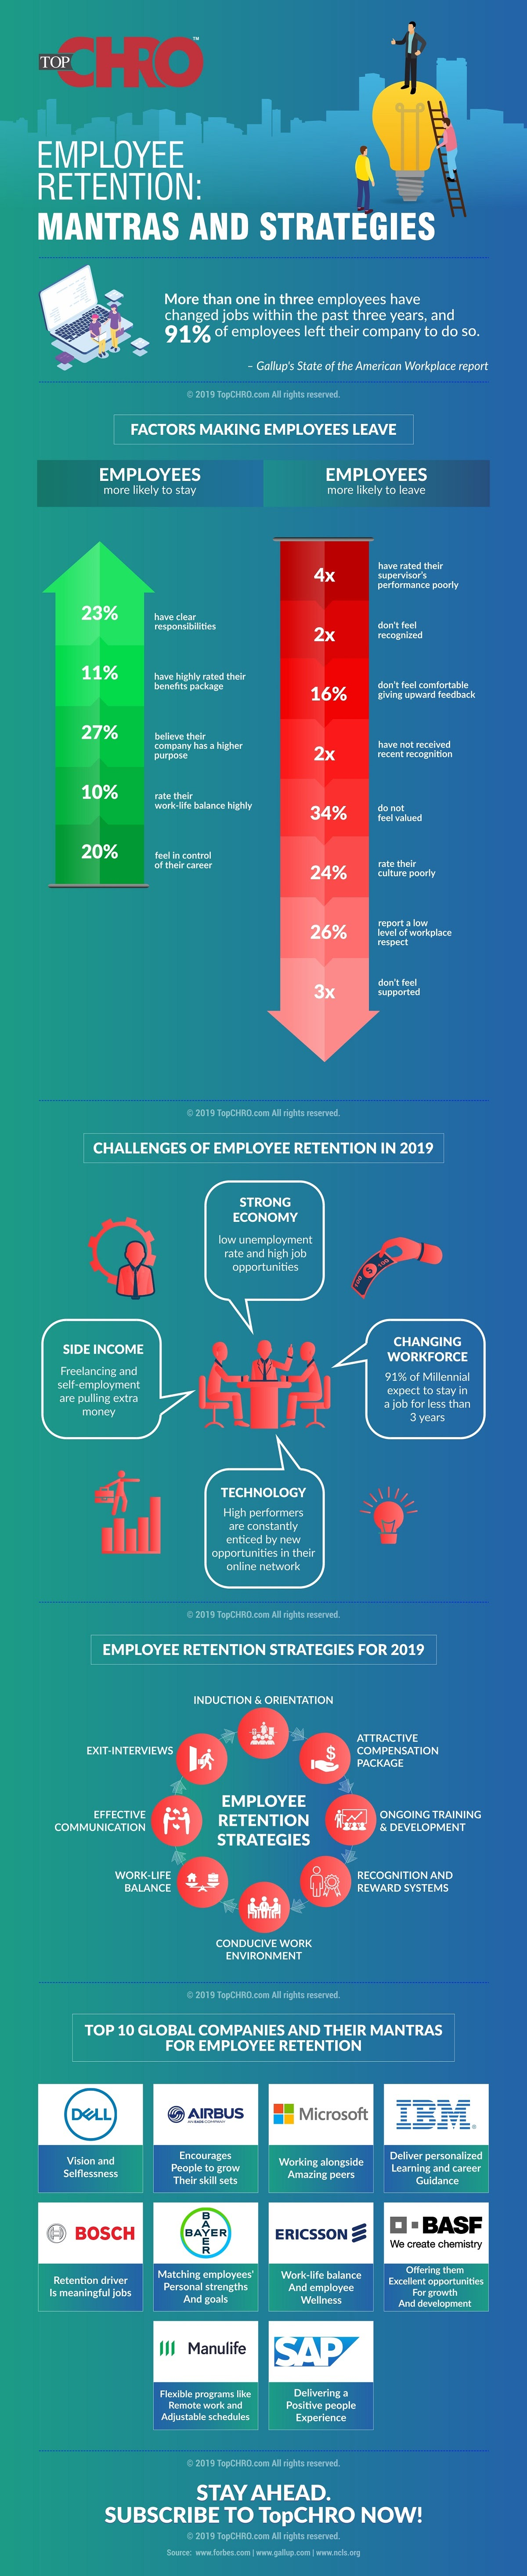 employee-retention-mantras-and-strategies-infographic